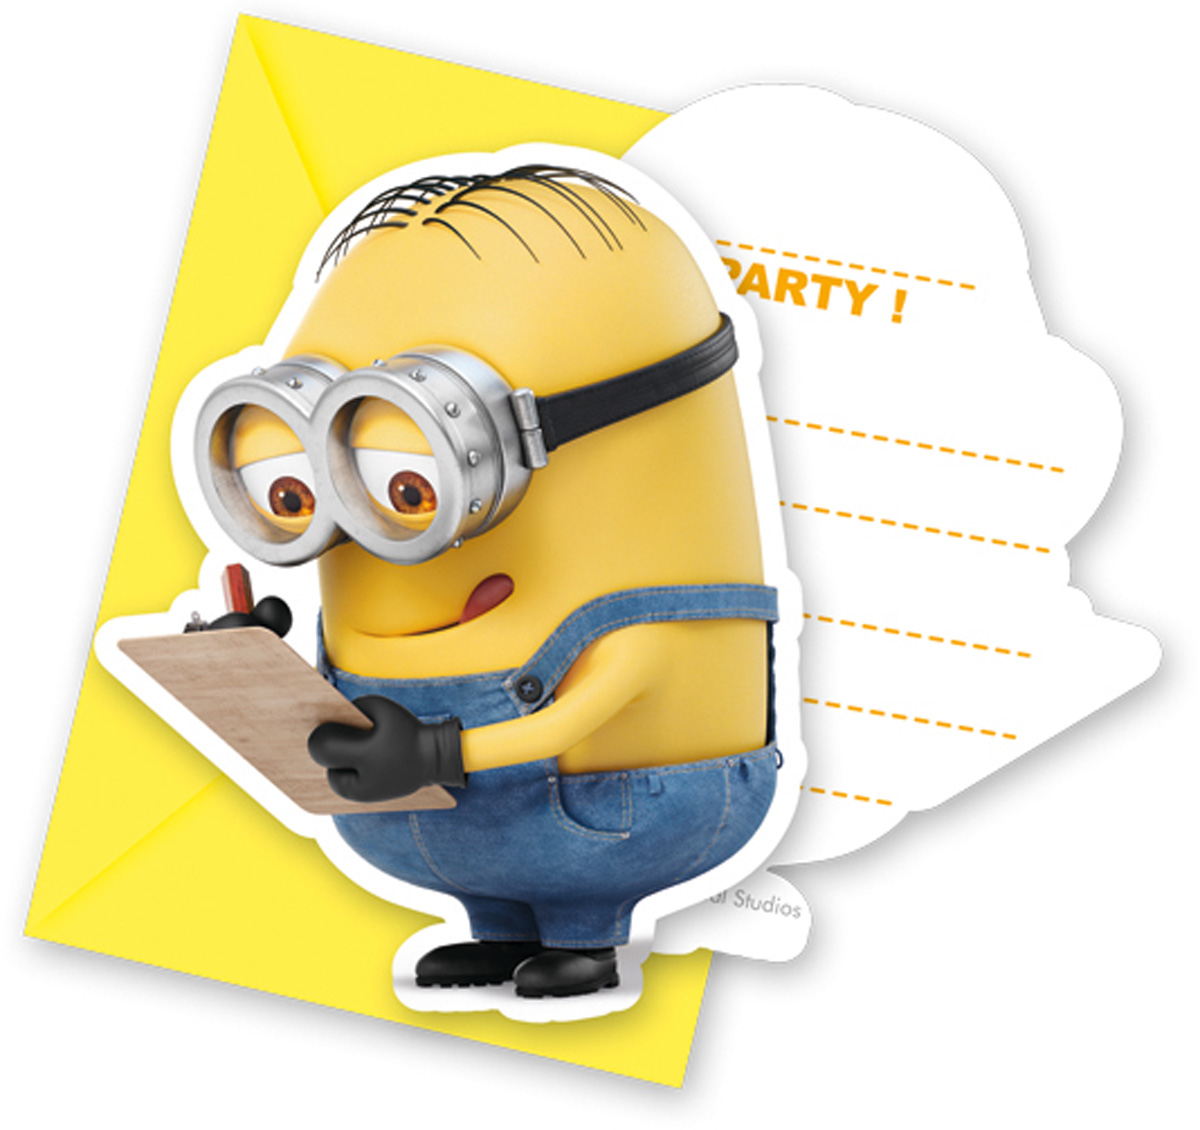 Invitation Invitations Invitation Card Minions Kids Party Birthday 6